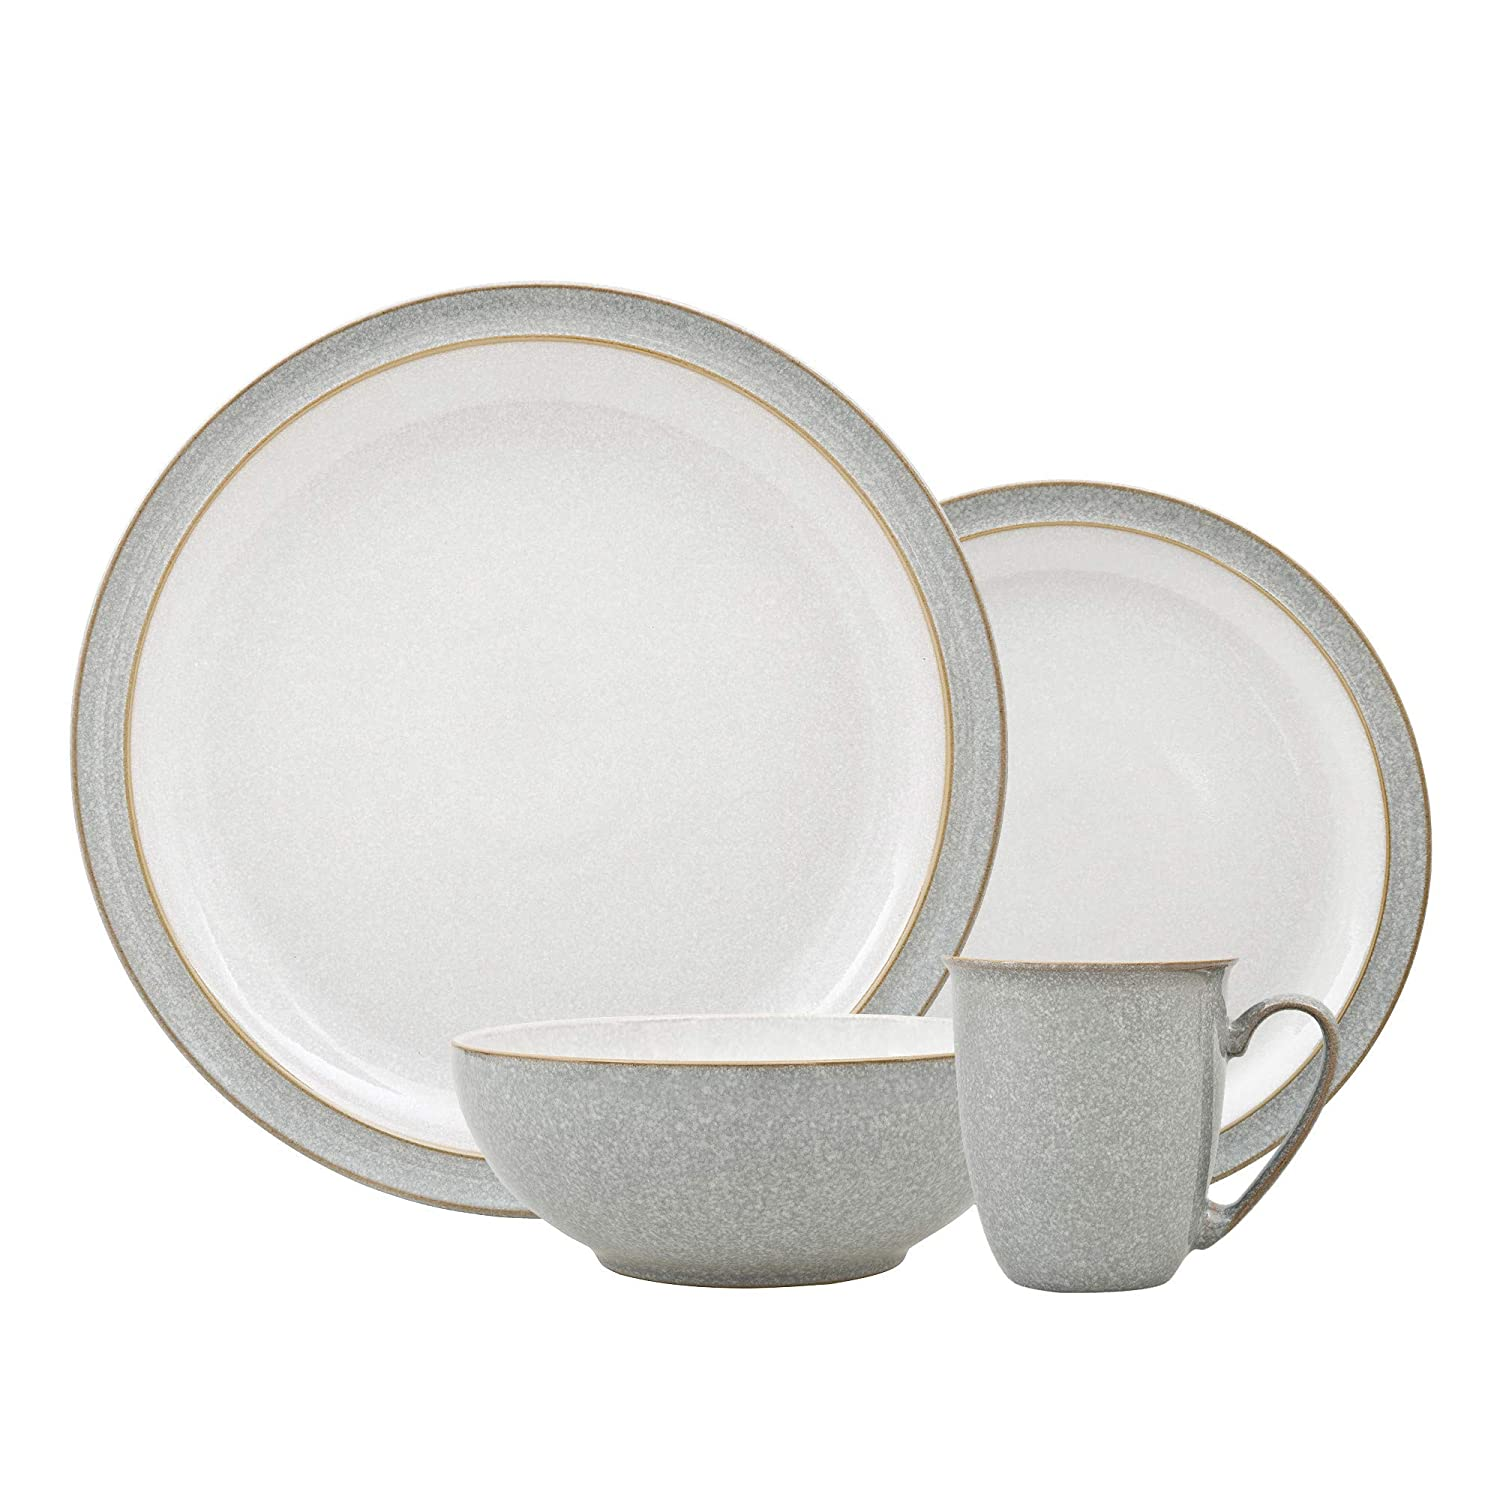 12 Piece Everyday Use Basic Dinner Set in White 27cm 10.5 Main Plates Normal Size